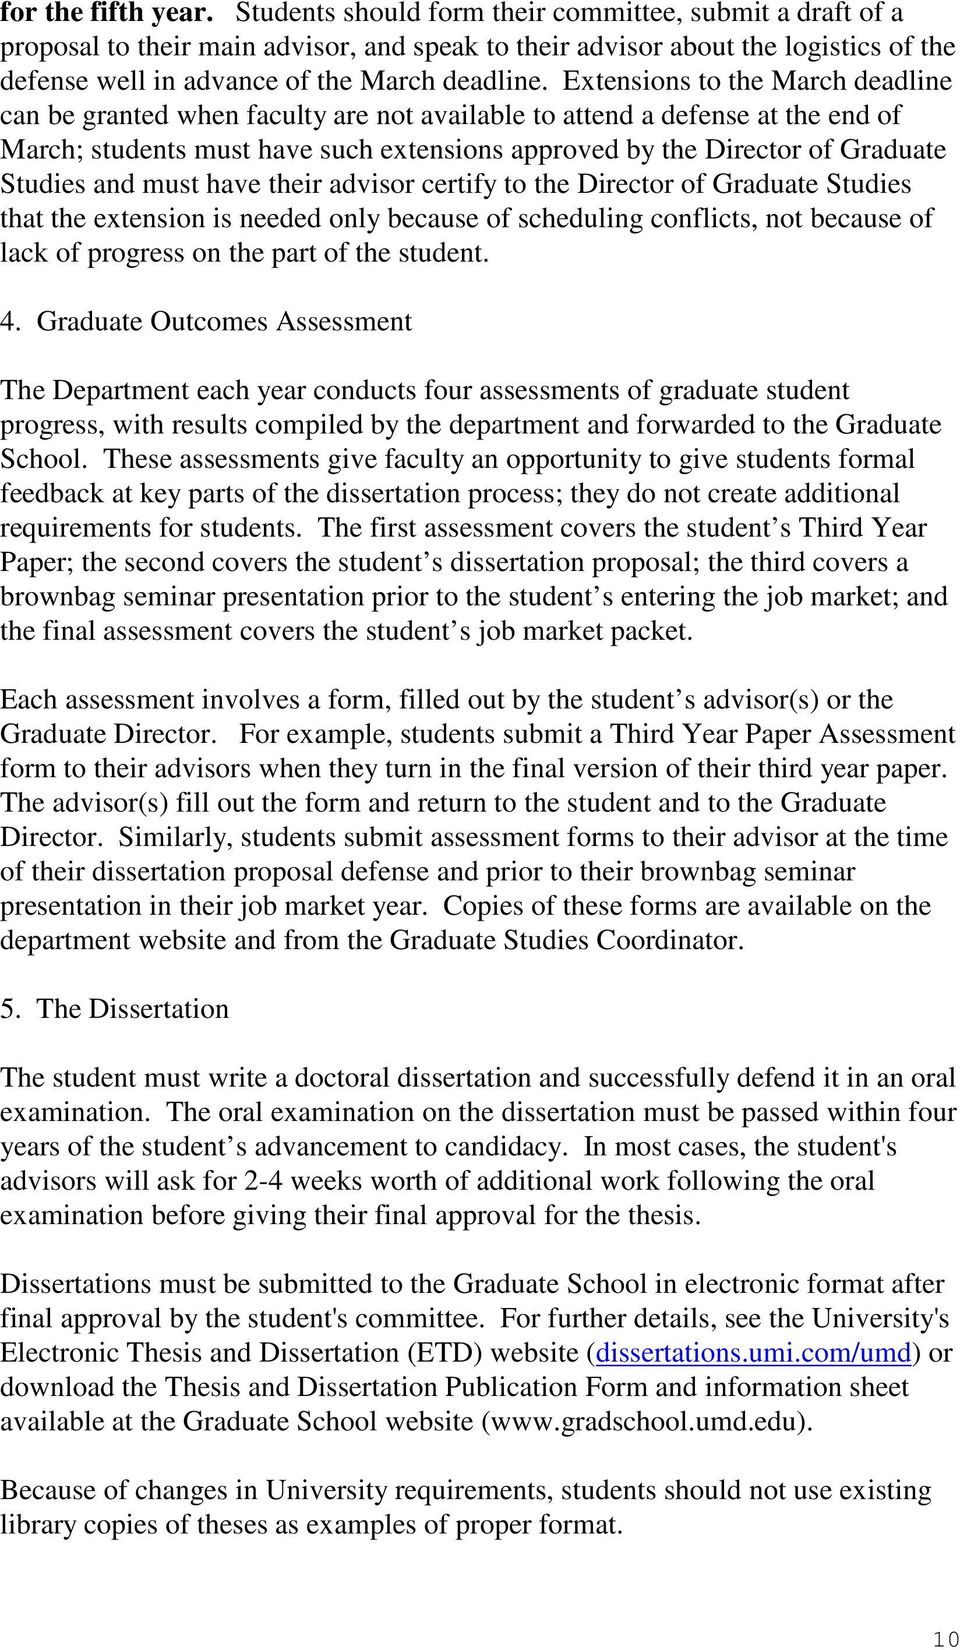 Extensions to the March deadline can be granted when faculty are not available to attend a defense at the end of March; students must have such extensions approved by the Director of Graduate Studies